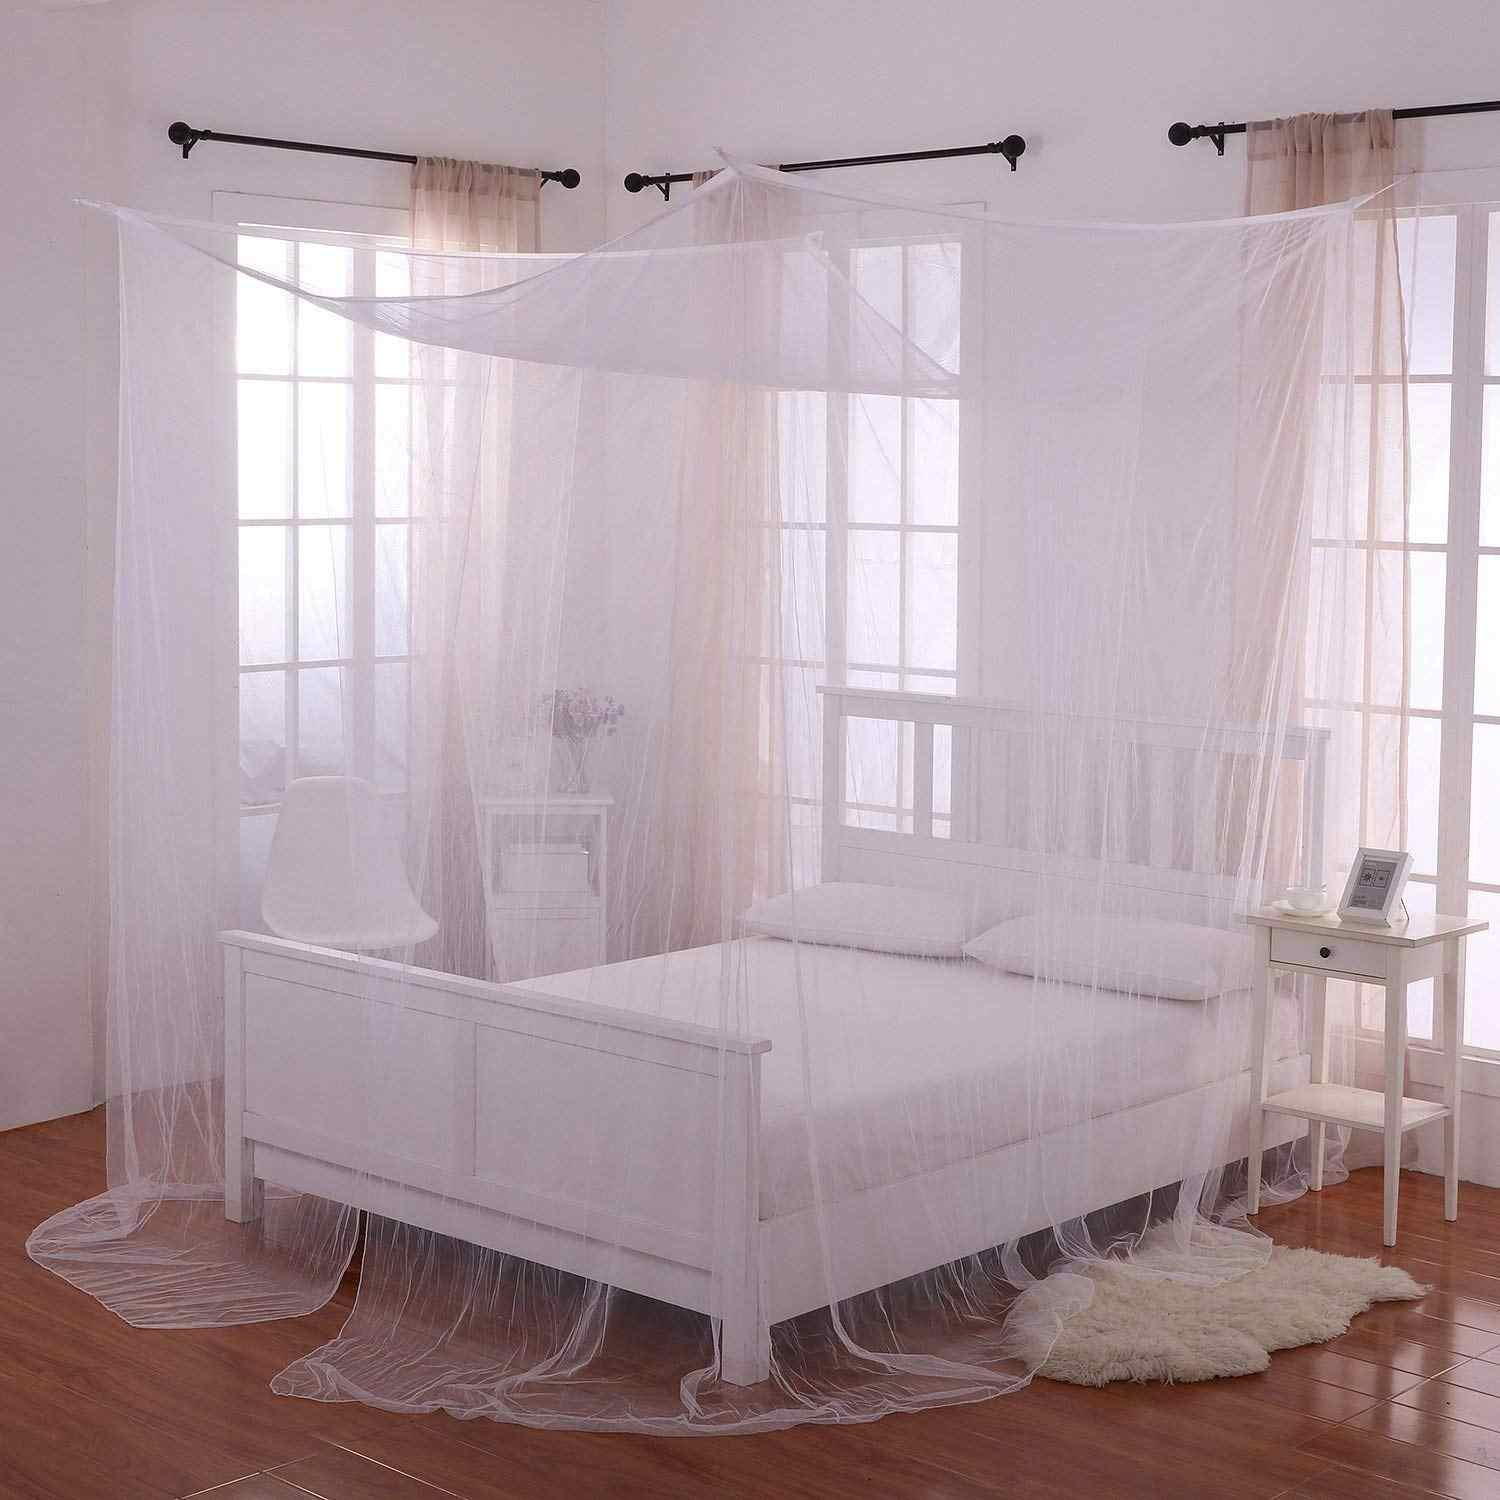 Interiors Ciel De Lit 190x210x240cm european style 4 corner post bed canopy mosquito net full  netting bedding ciel de lit moustiquaire beds kids room